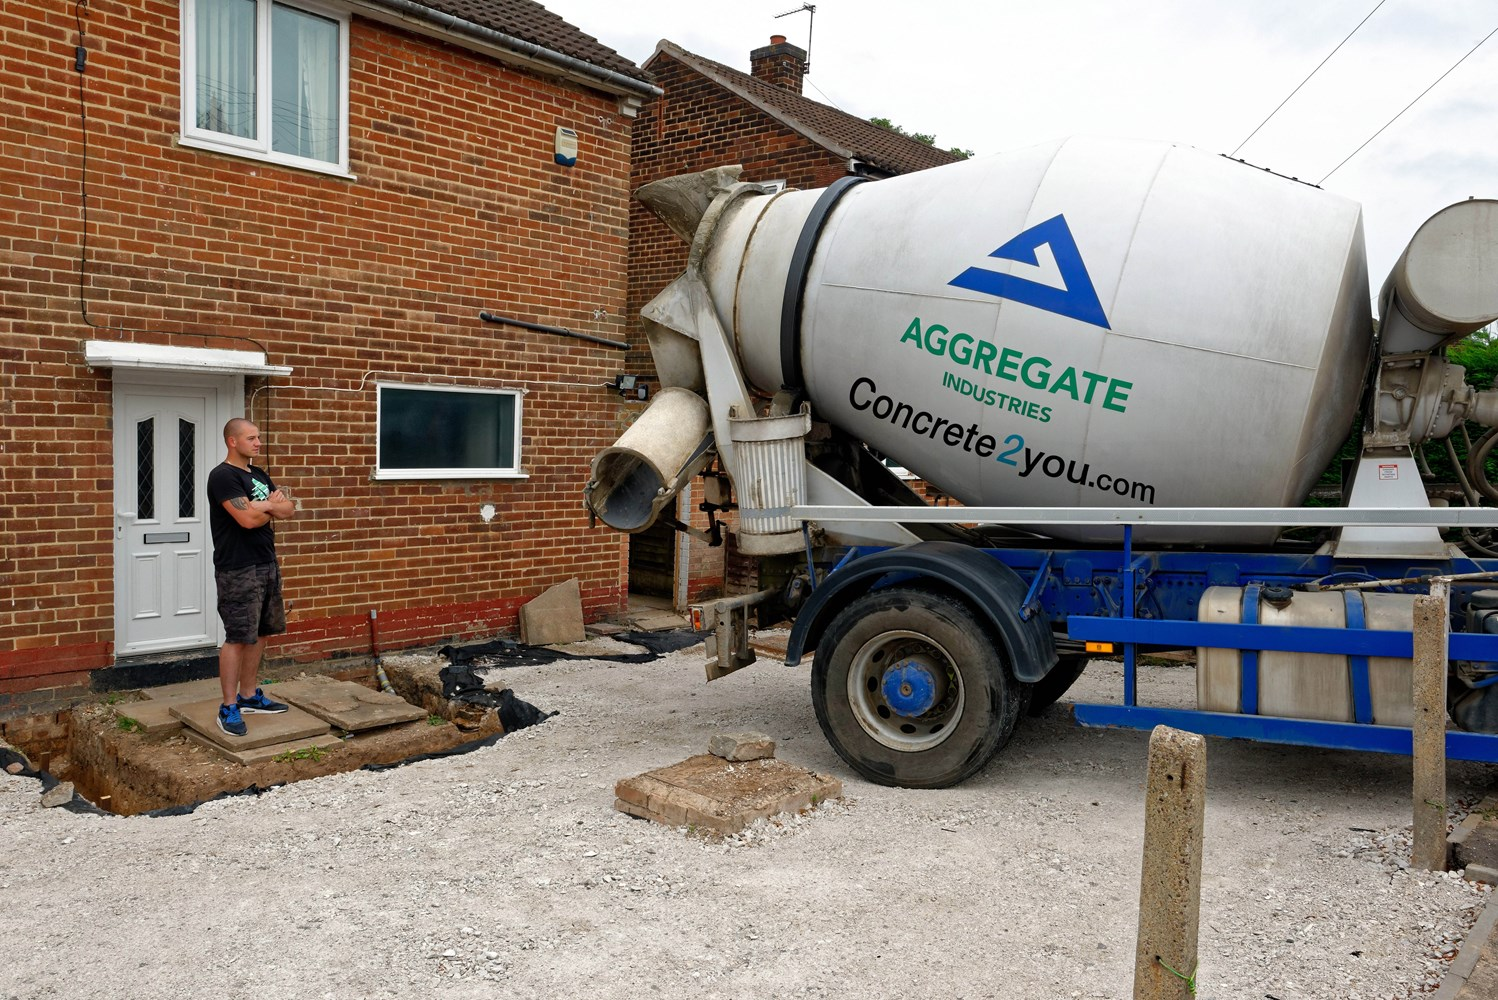 Concrete Mixer Truck Dimensions | Concrete2you